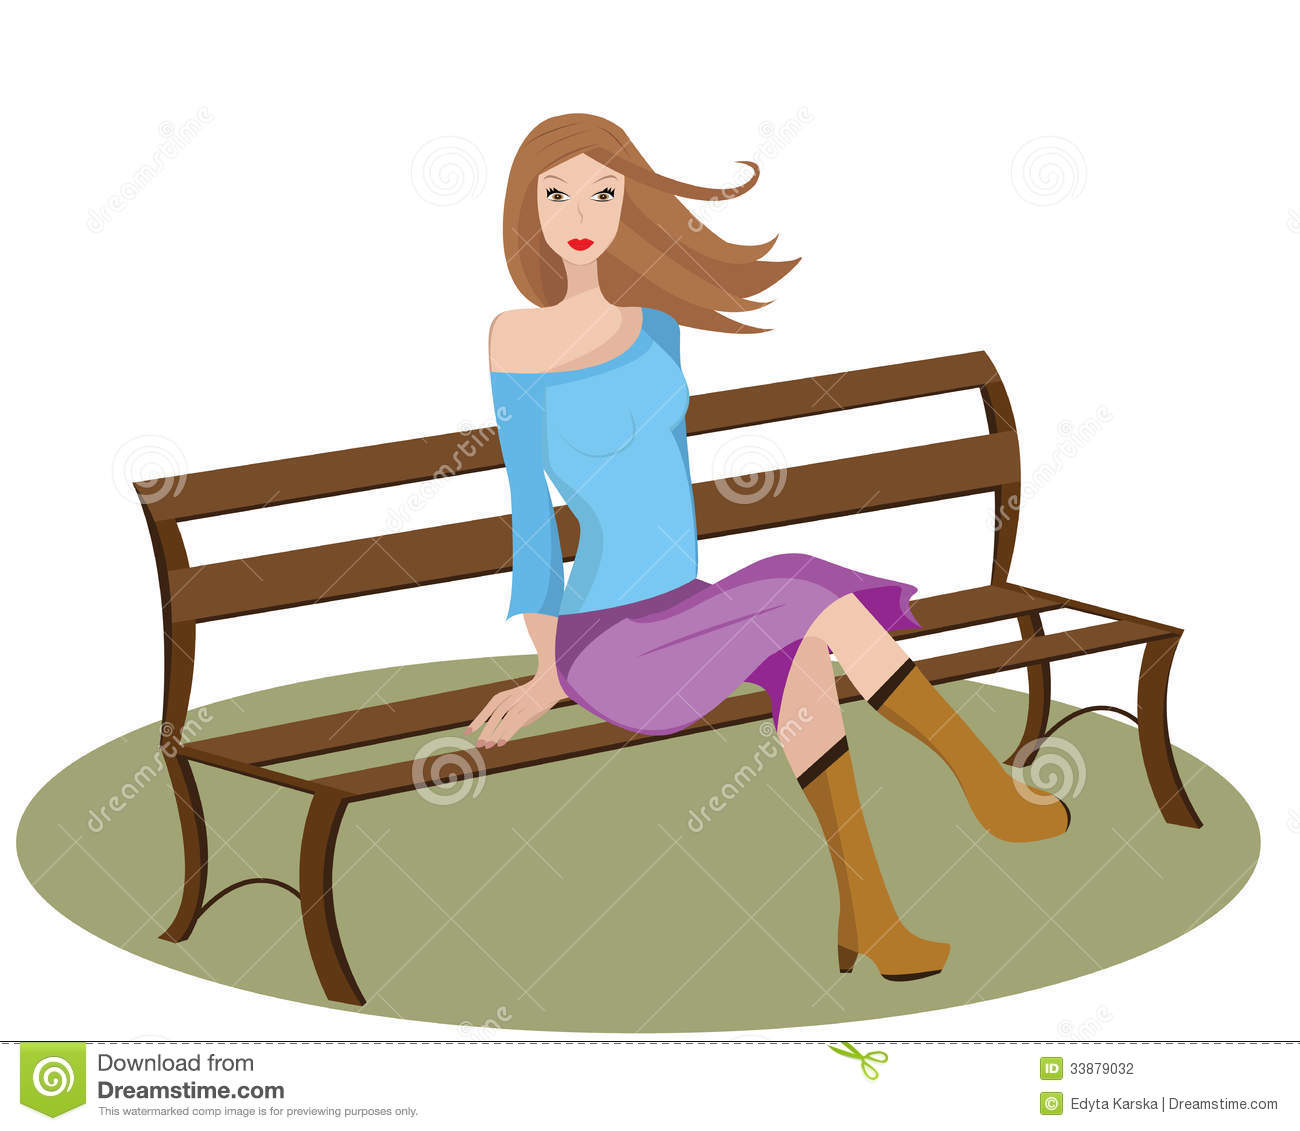 Girl sitting on a bench. stock vector. Image of fashion ...